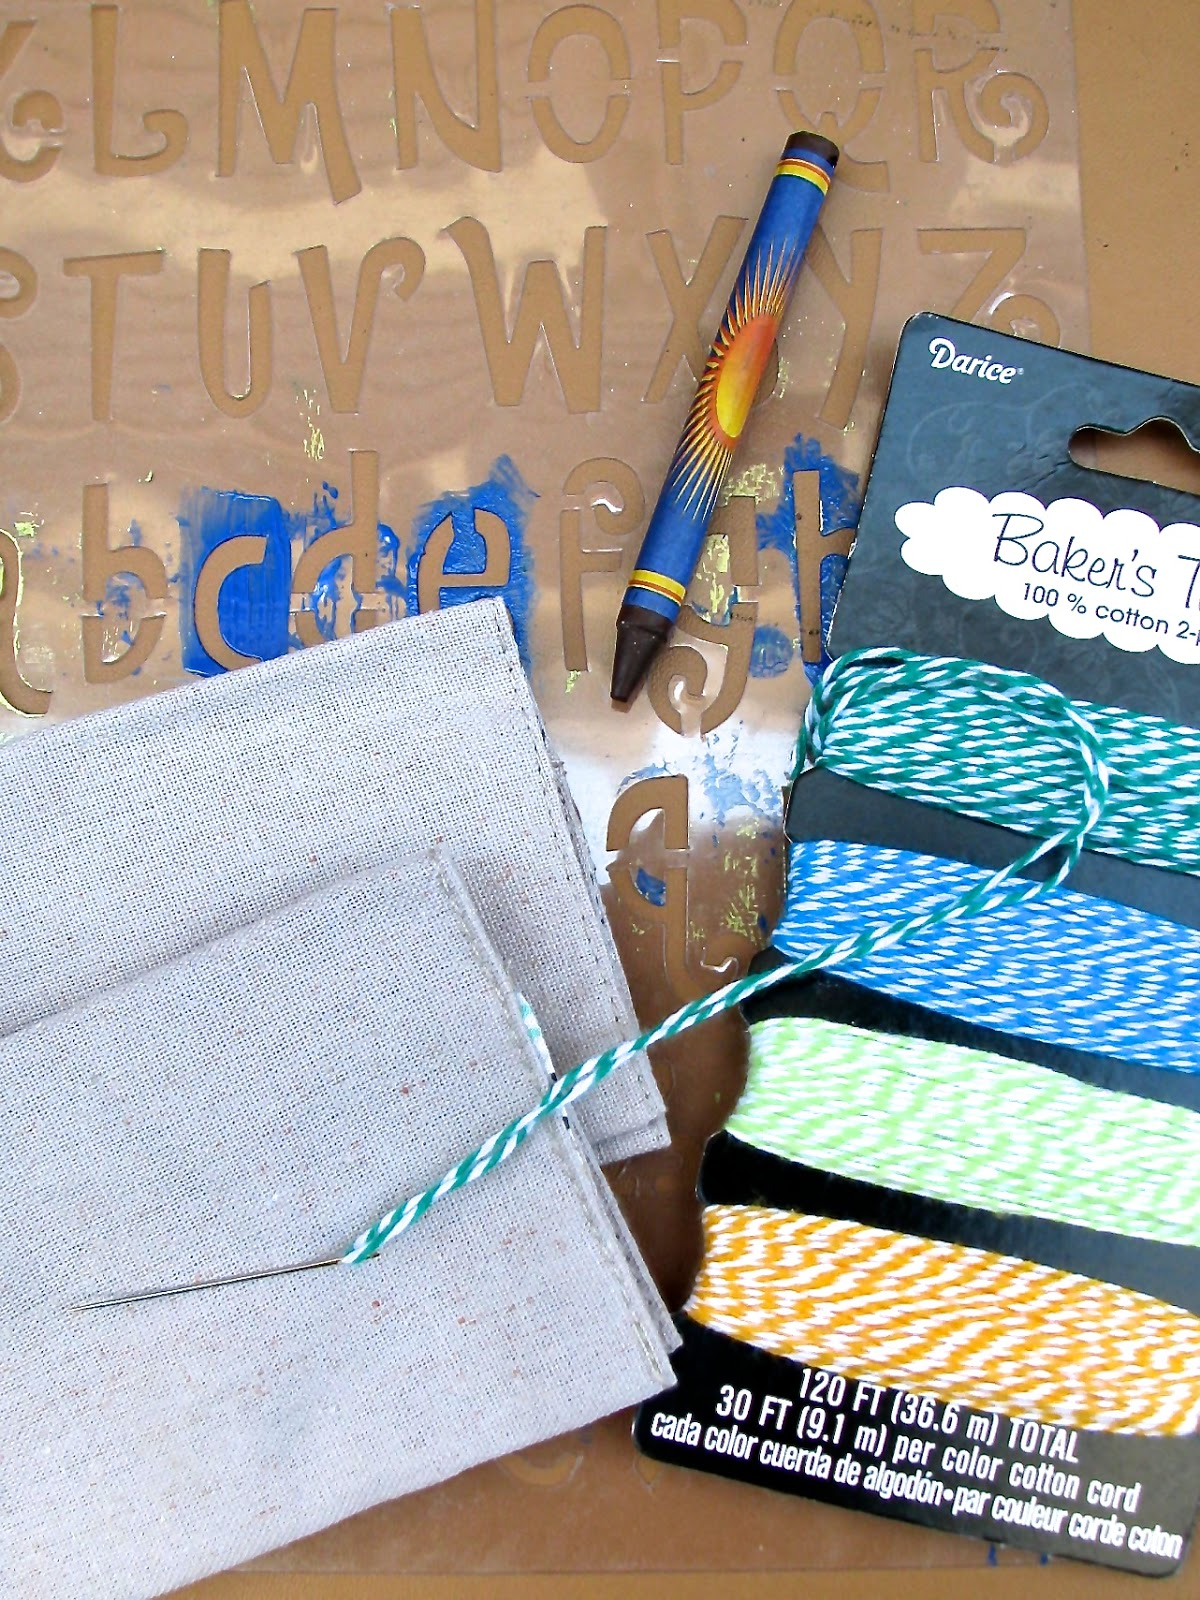 Stencil, crayon, fabric card holders, baker's twine and needle